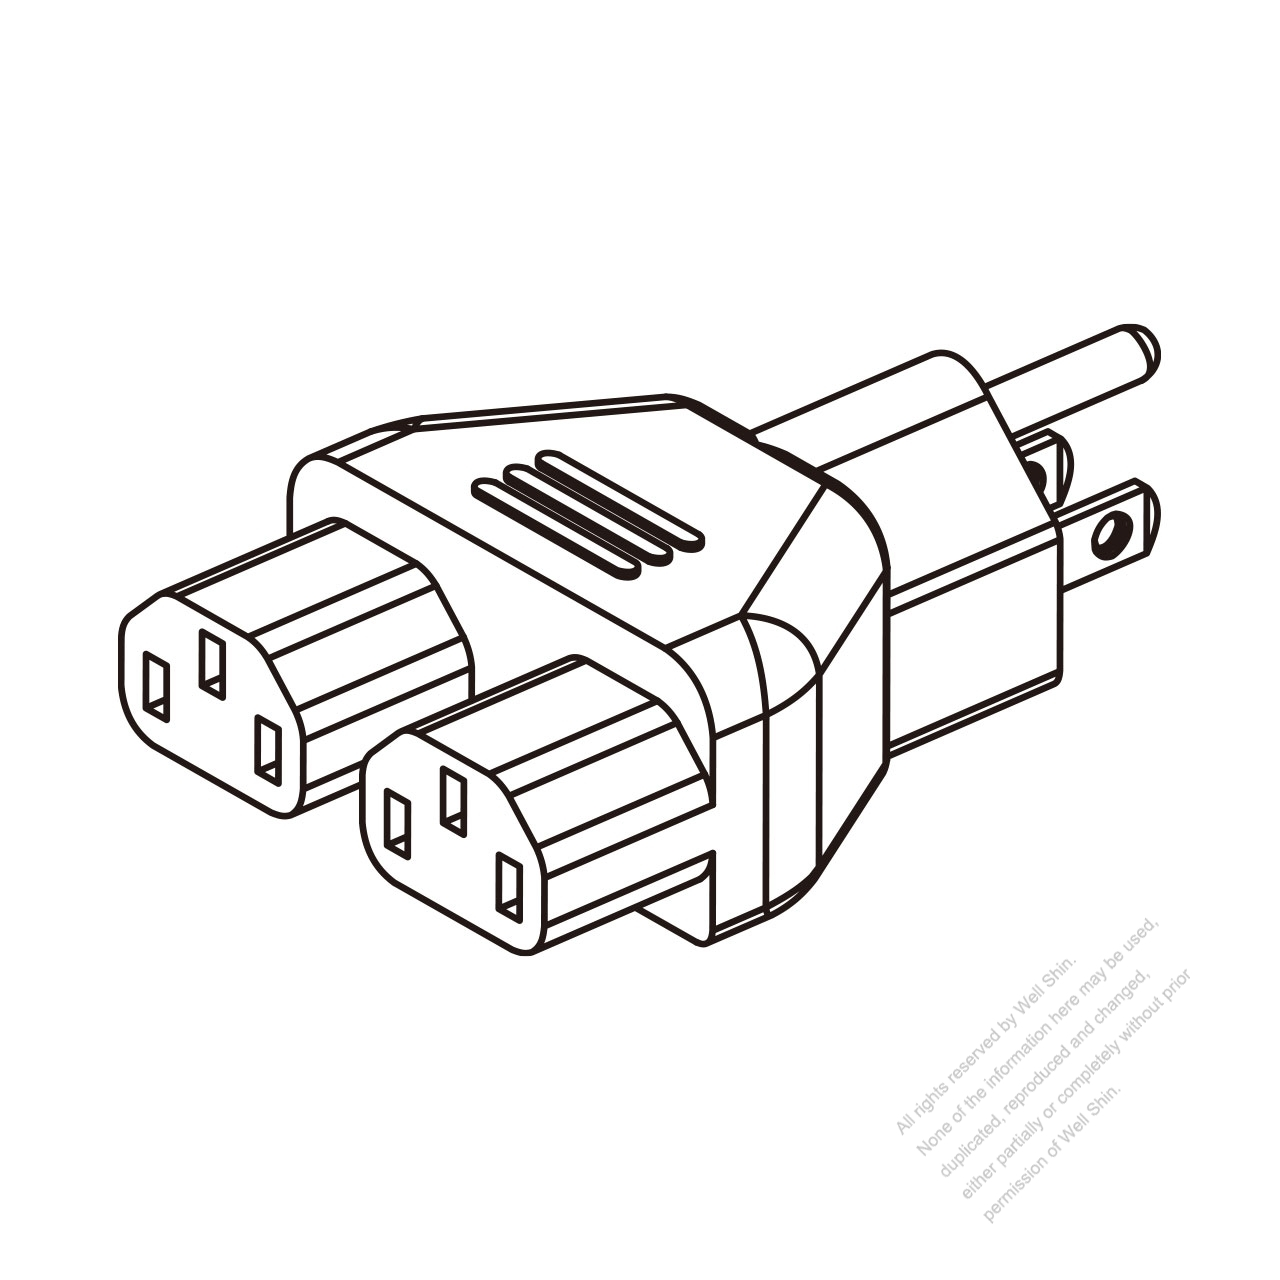 Adapter Plug, NEMA 5-15P to IEC 320 C13 x 2, 3 to 3-Pin